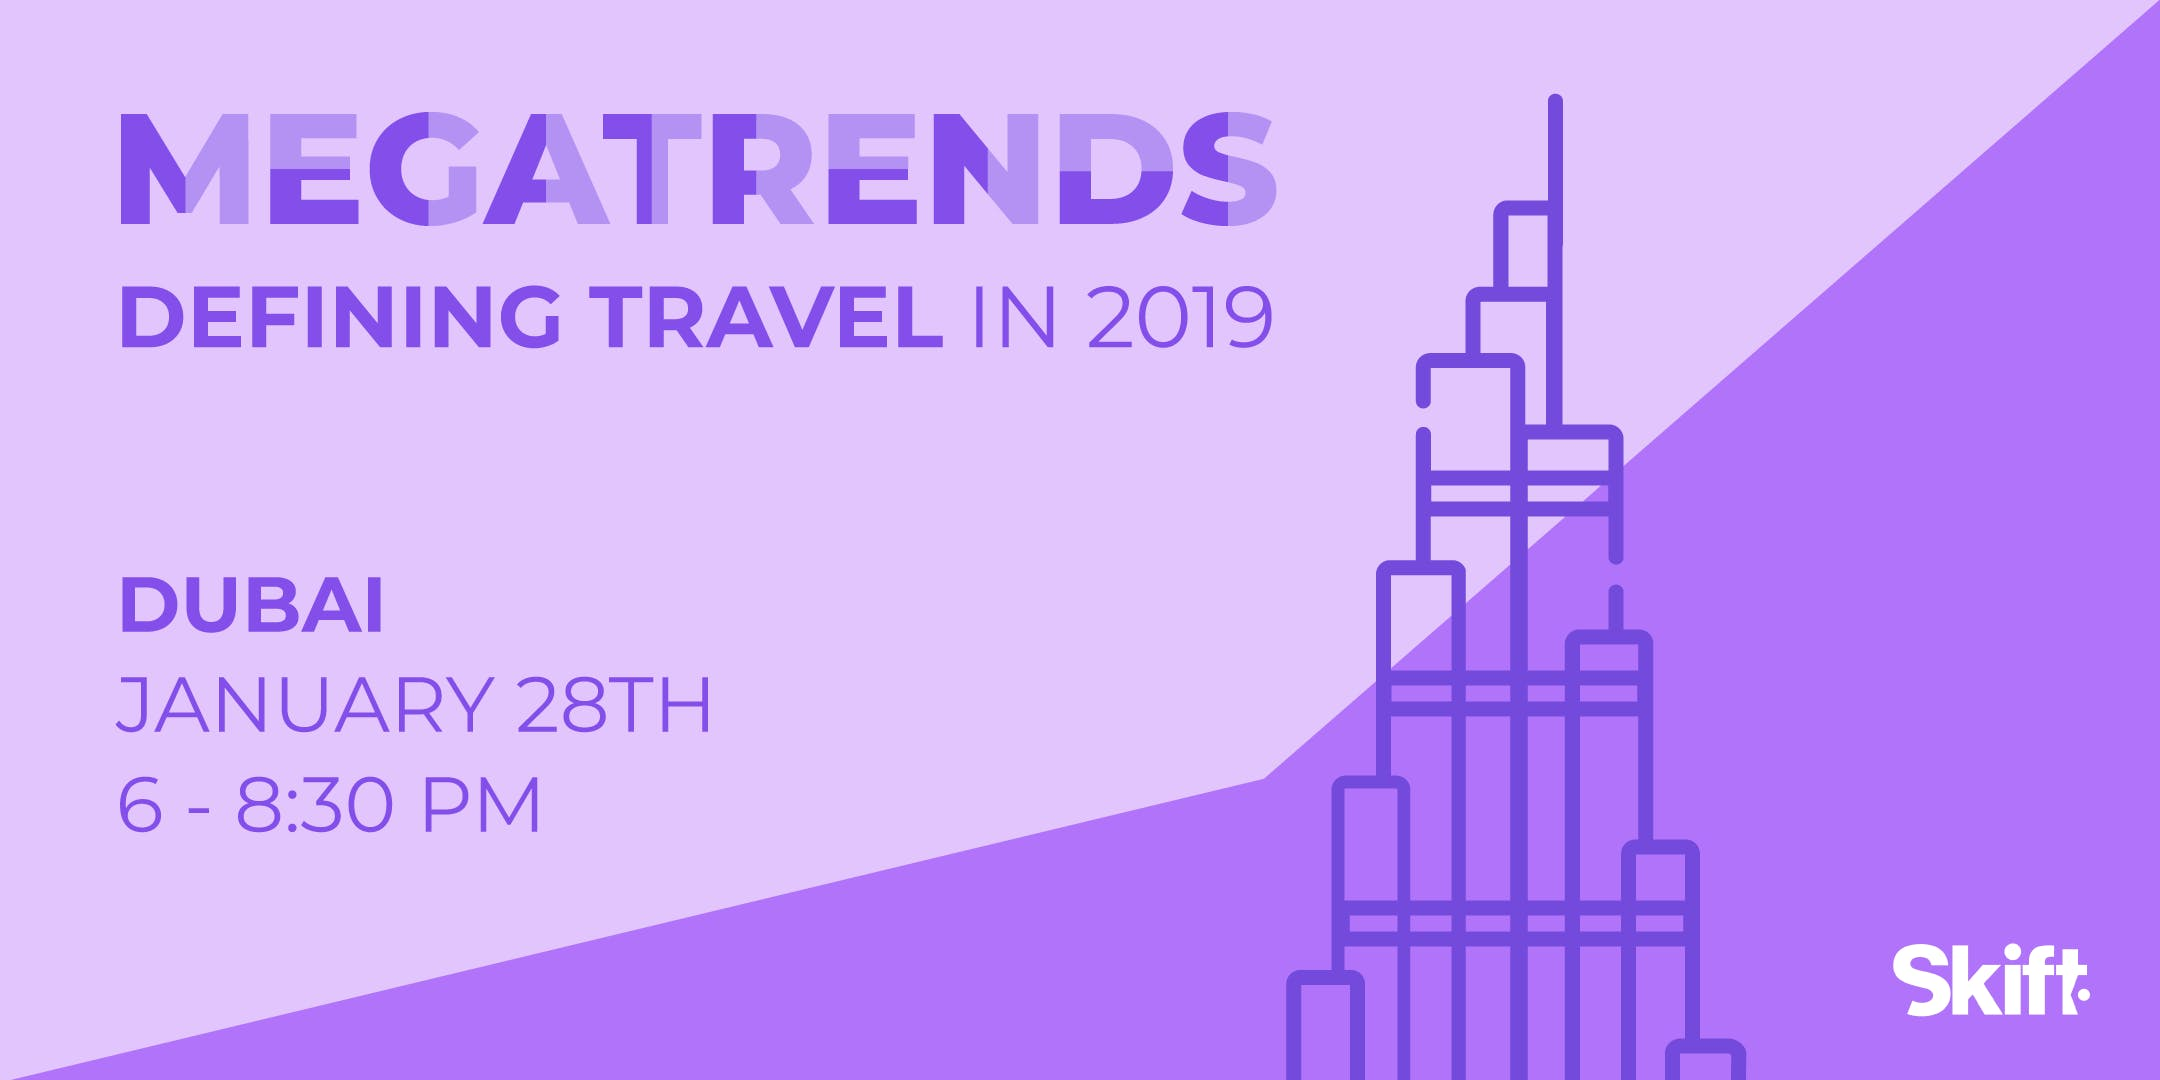 Skift's 2019 Travel Megatrends Forecast & Magazine Launch Event: DUBAI